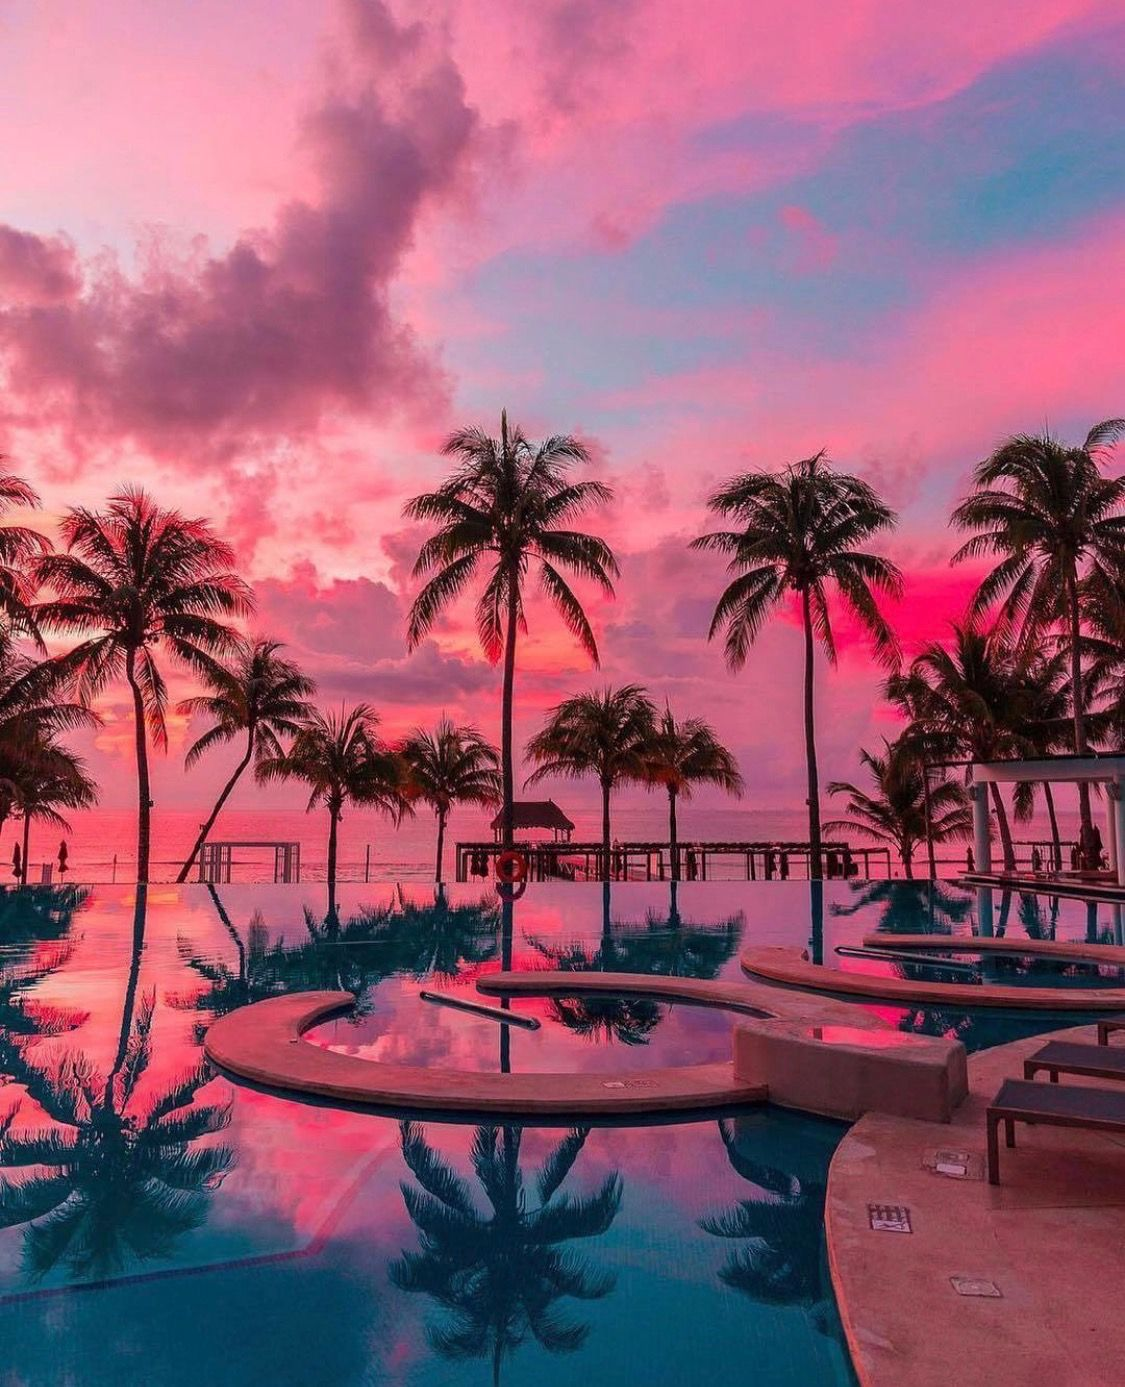 Playa Del Carmen Mexico Sunset Vacations Beautiful Wallpapers Sunset Wallpaper